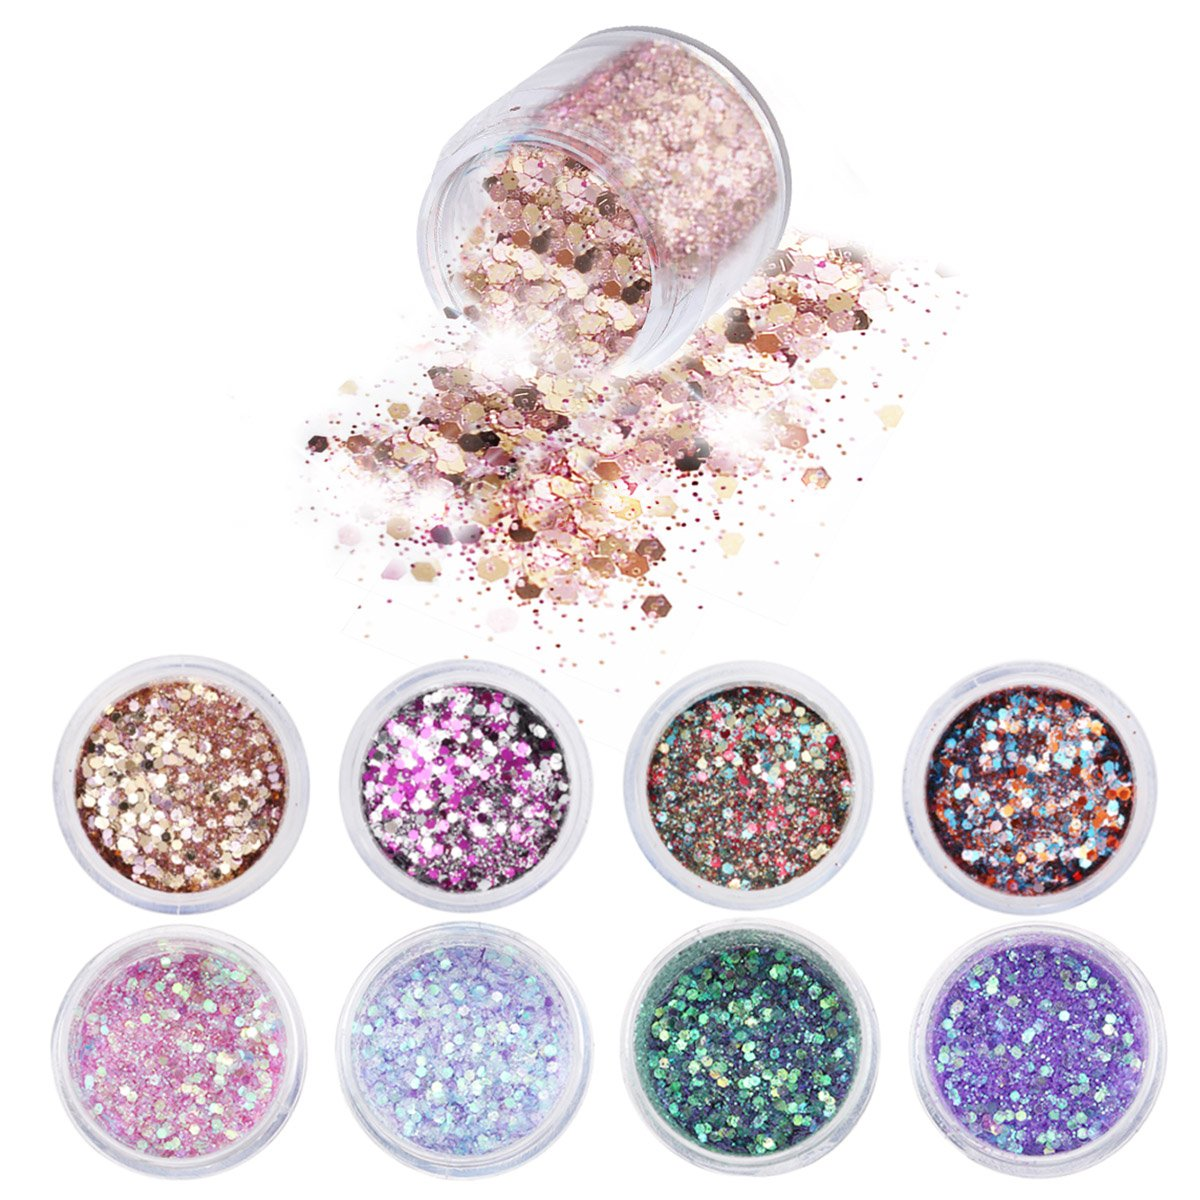 Glitzerpuder für Nägel | Amazon.de Beauty